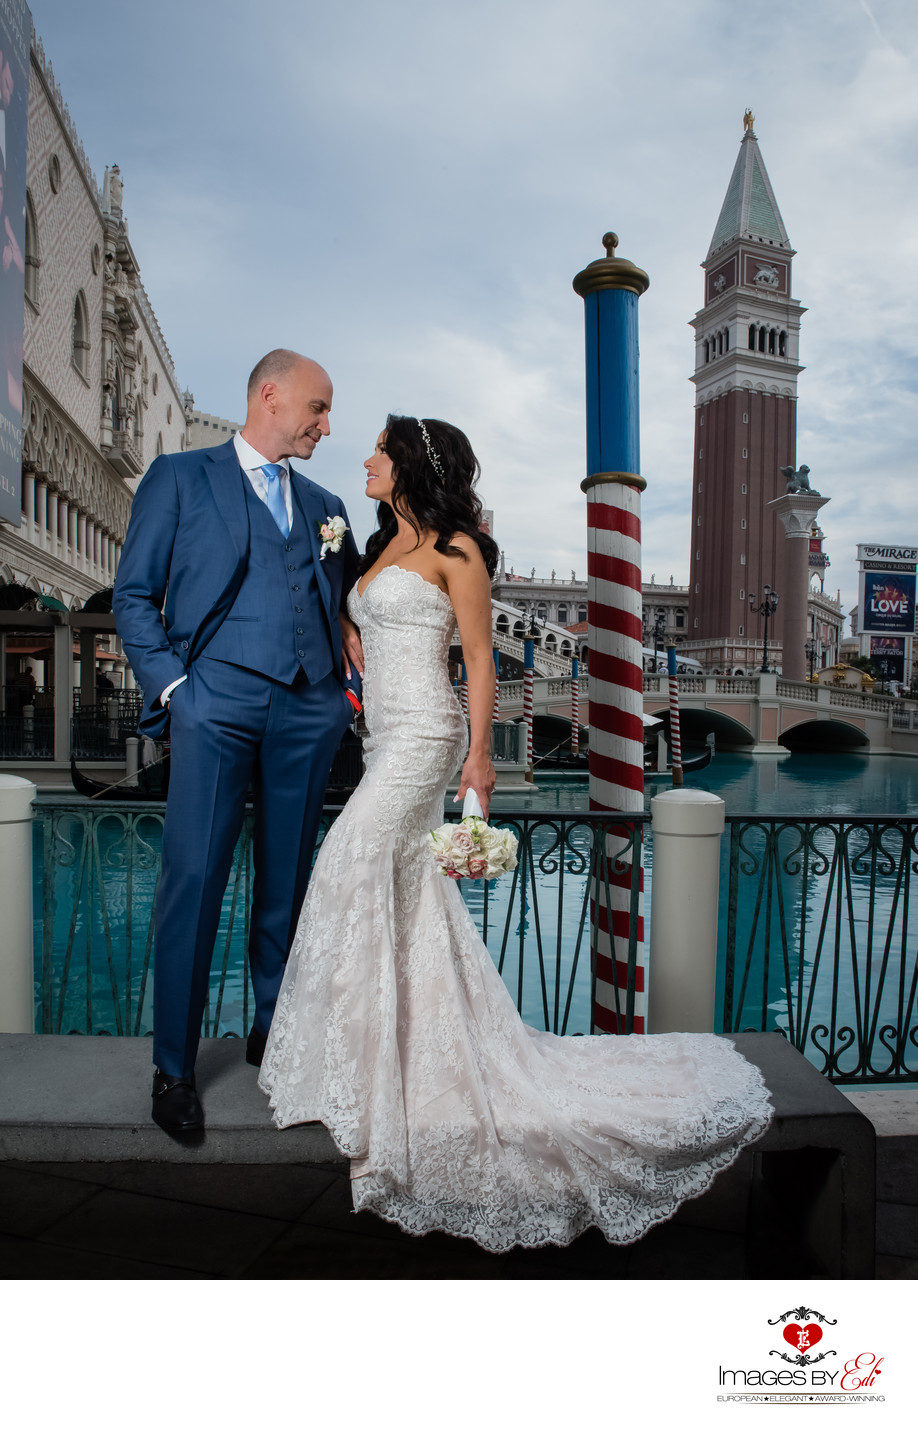 Las Vegas Venetian Hotel Wedding Photography | Creative Las Vegas Wedding Photographer |  Las Vegas Strip Elopement | Images by EDI